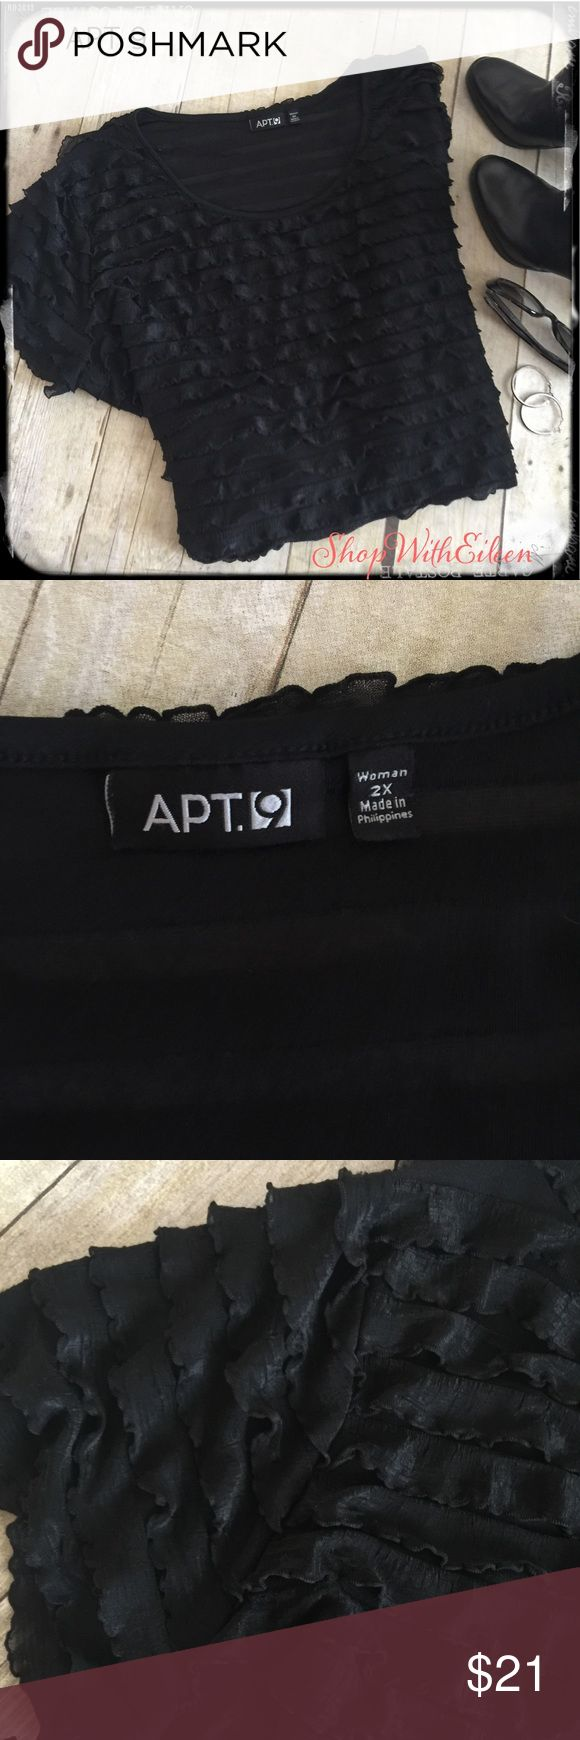 Apt. 9 Black Ruffle All over Top! Christmas Staple Apt. 9 Black Ruffle All over Top! Christmas Staple forsure! Dress it up or dress it down and it will be perfect for this time of year! Very soft at 95% polyester 5% spandex EUC Apt.9 Tops Tees - Short Sleeve